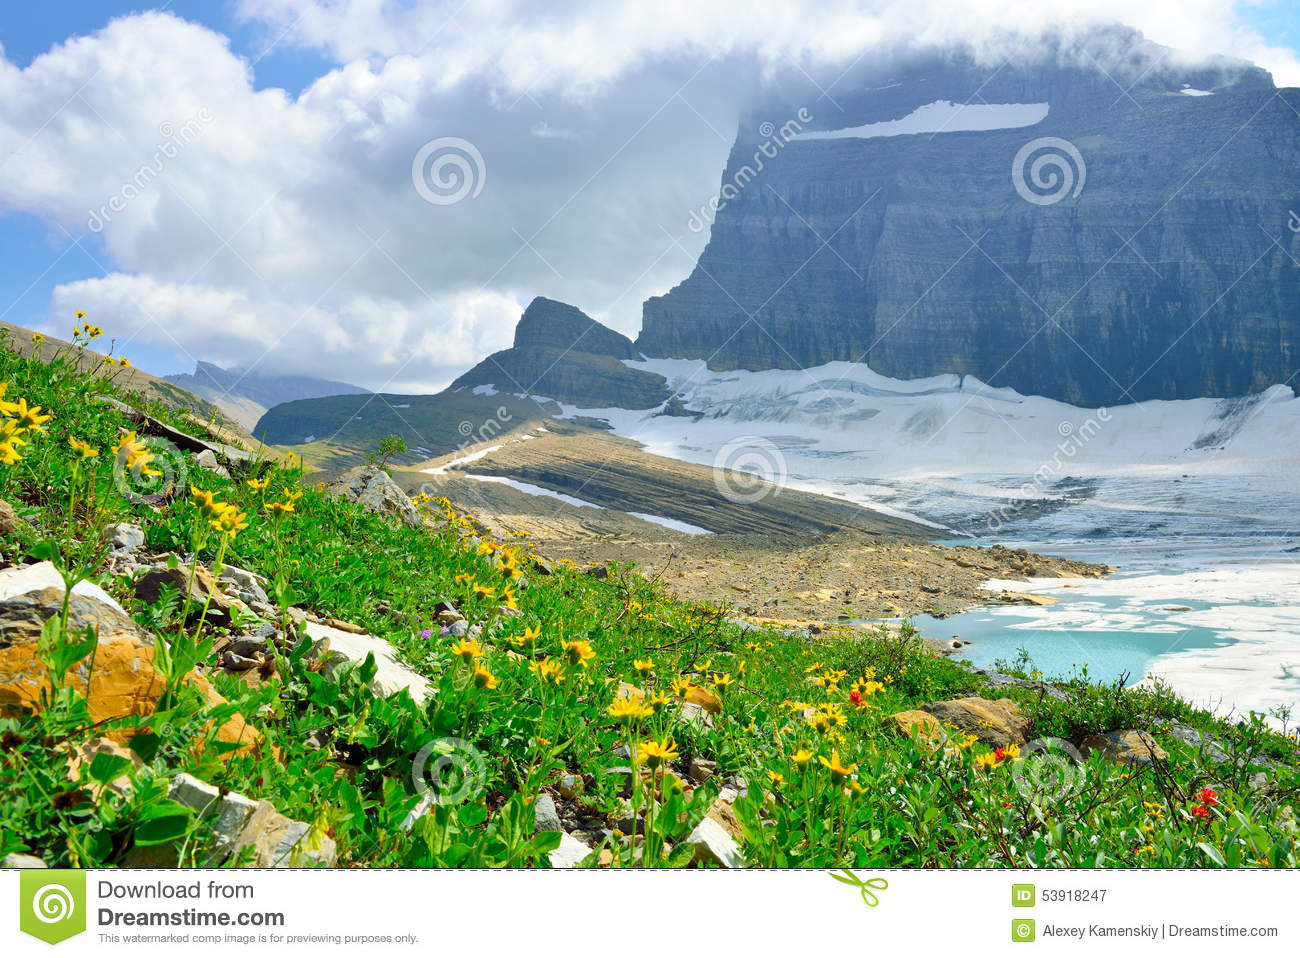 Grinnell Glacier clipart #17, Download drawings